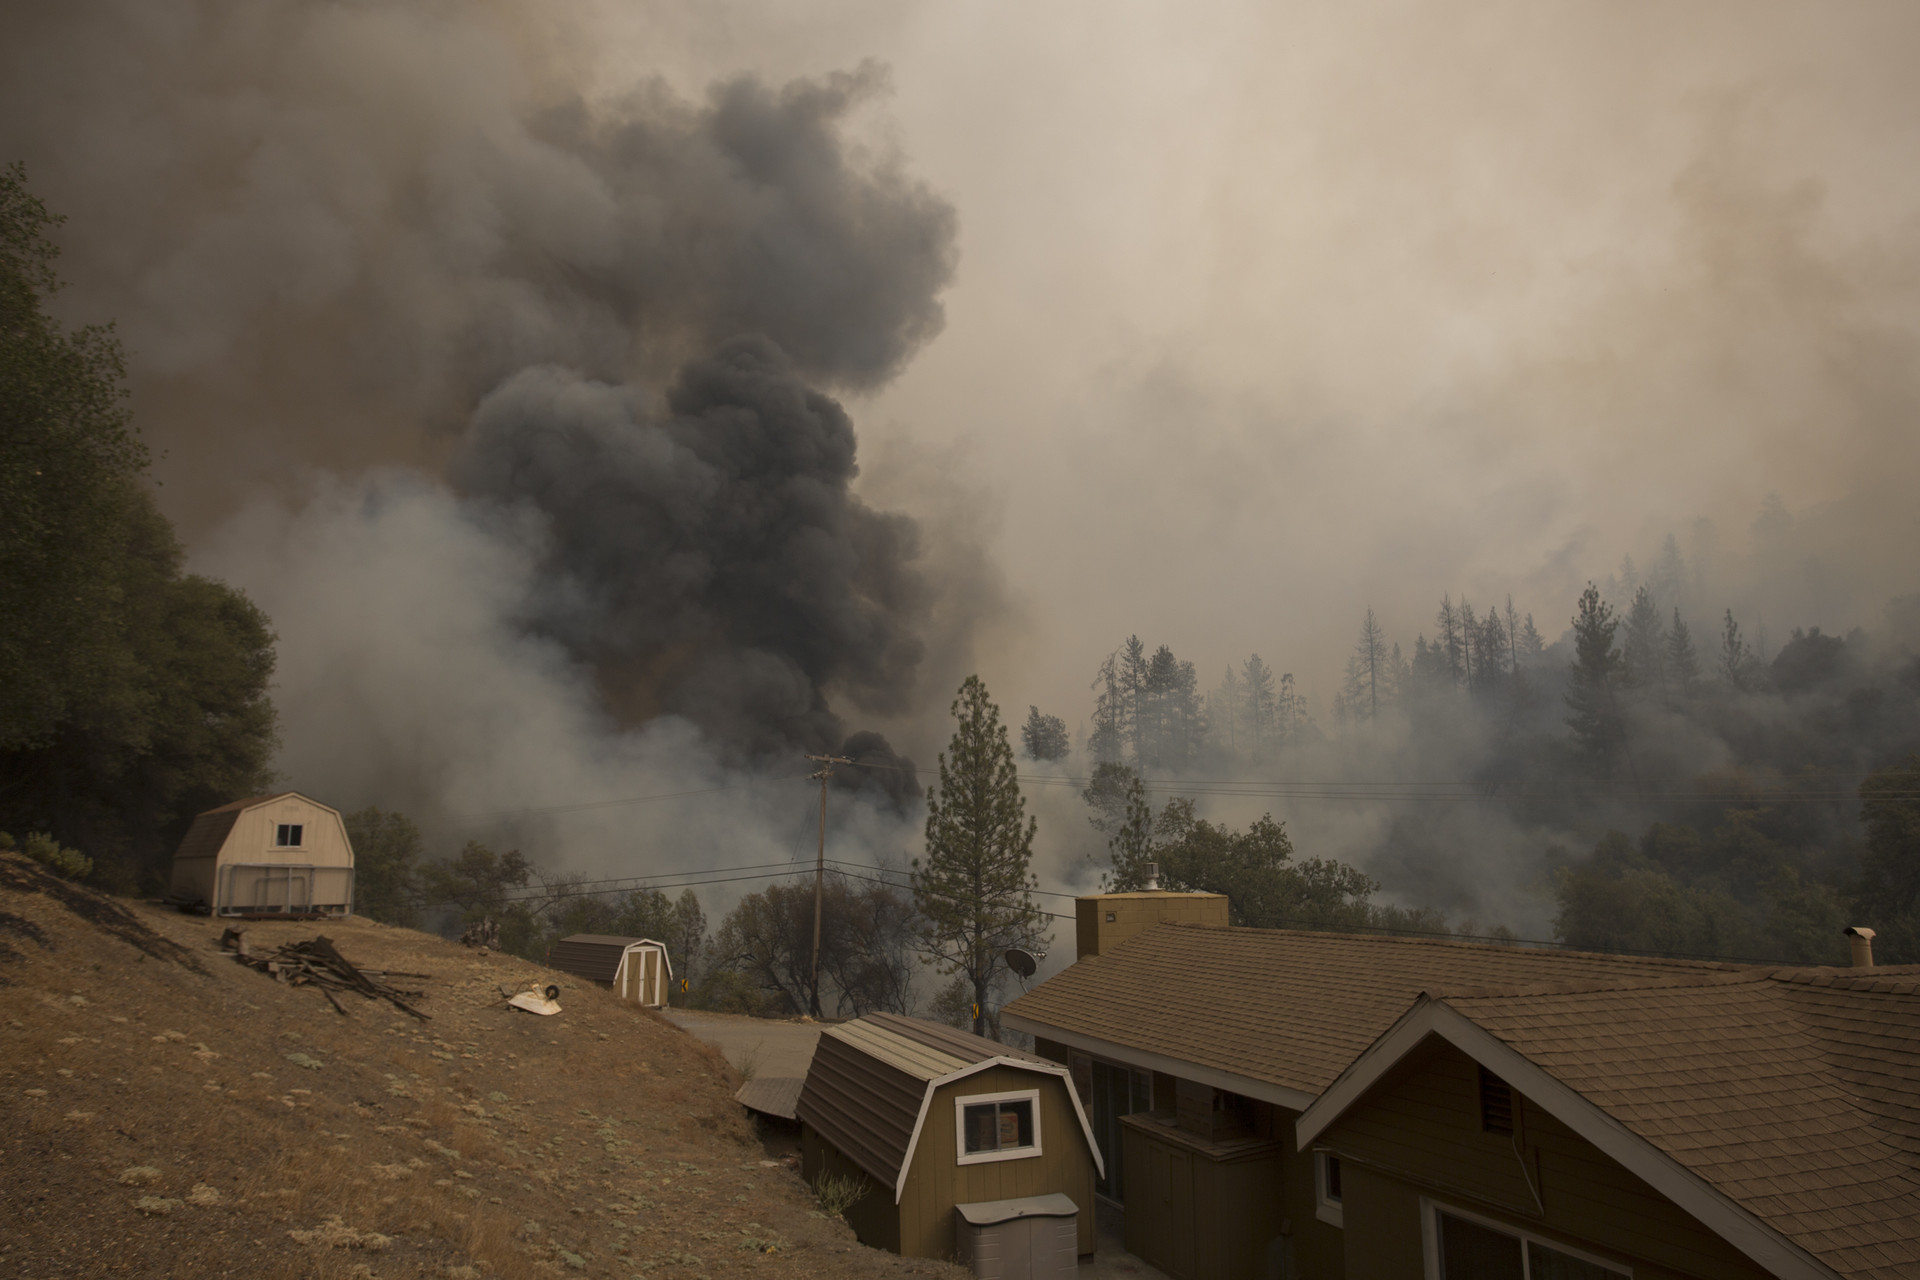 Smoke rises near a house on Mountain Ranch Road at the Butte Fire on September 13, 2015 near San Andreas, California.